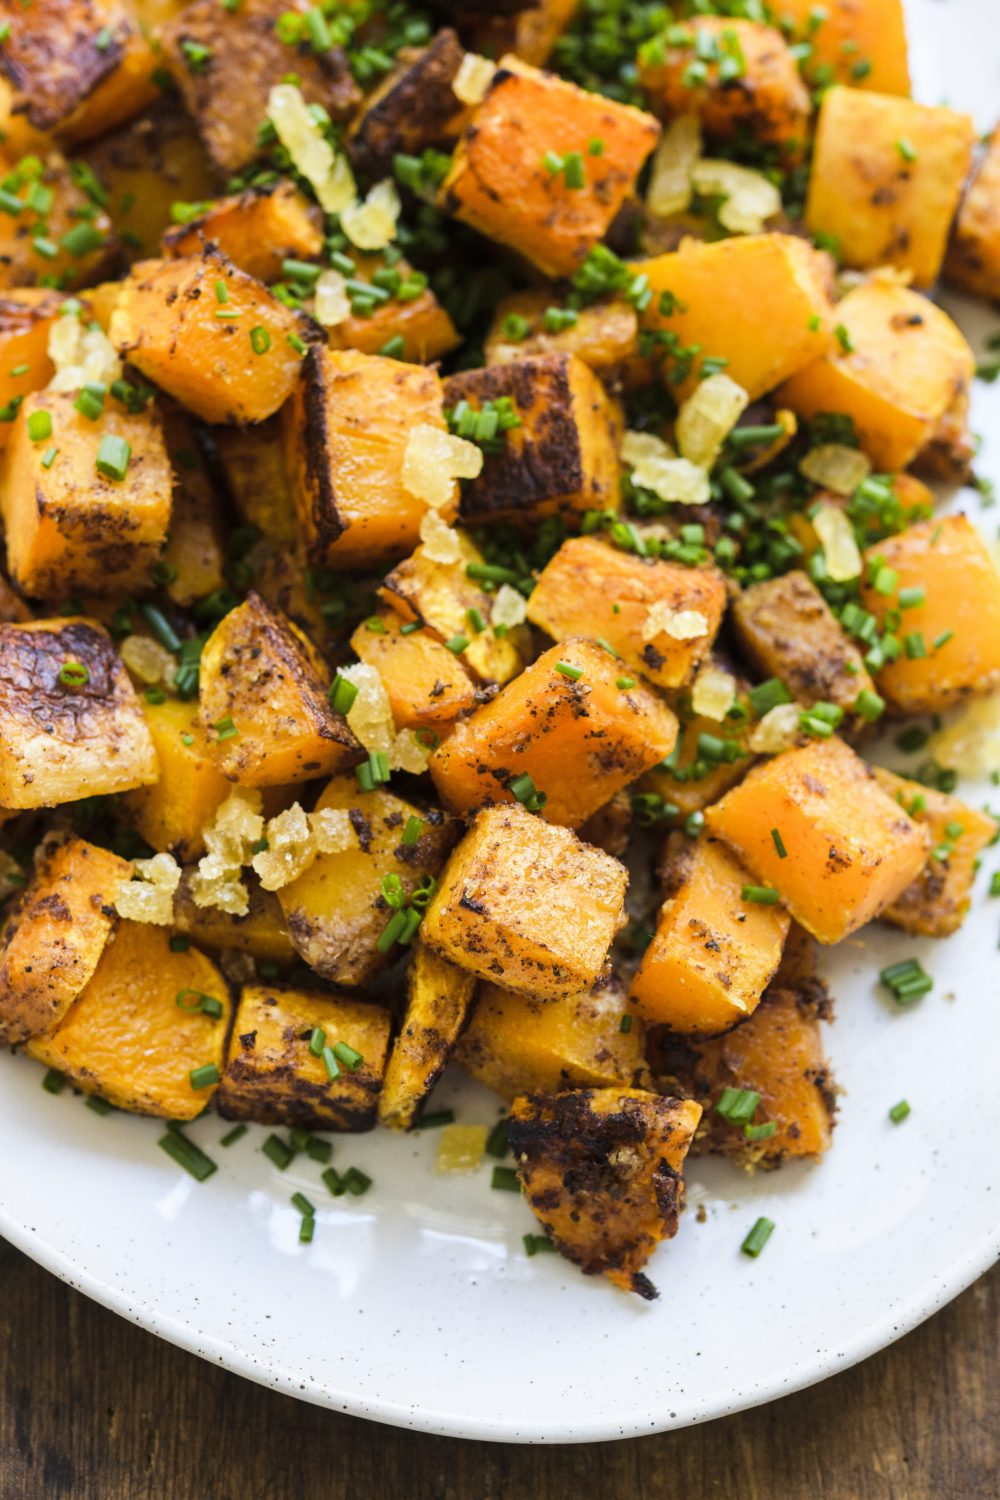 Roasted Butternut Squash with Ginger and Five-Spice